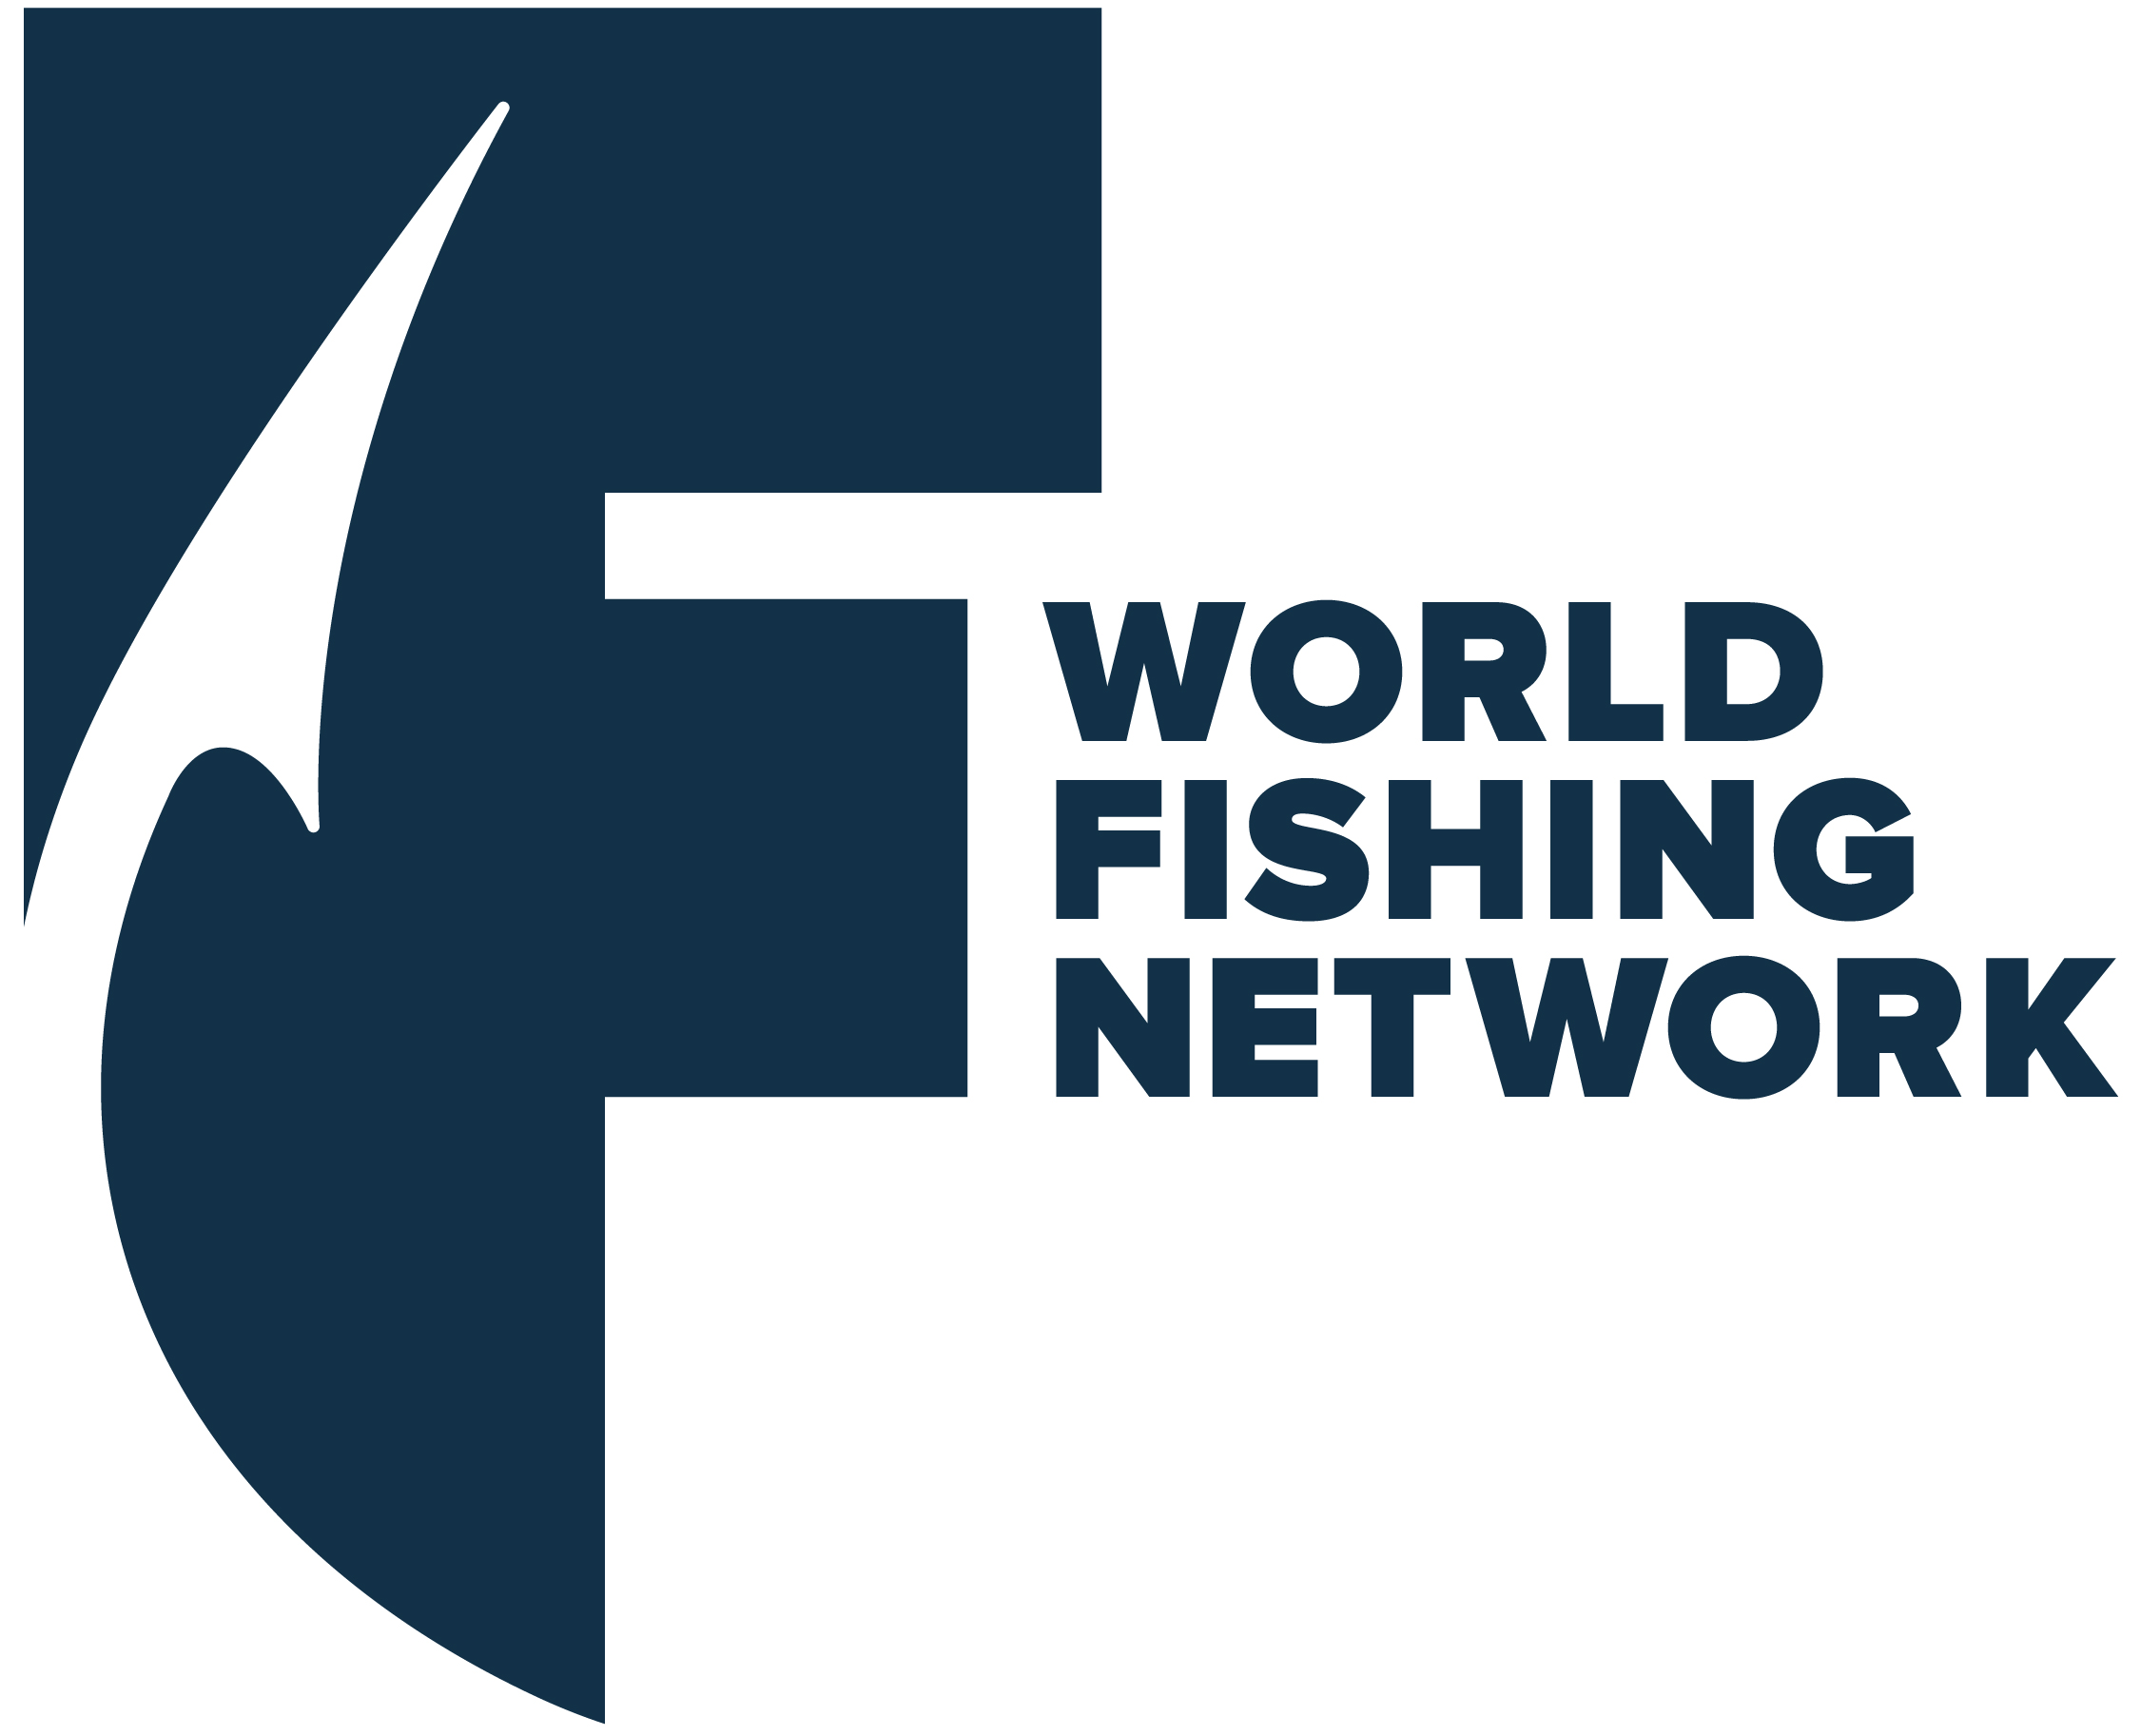 April 26th Podcast: Gallagher Transport – World Fishing Network: JP DeRose and Mark Melnyk  – Austin Parr, Discount Fishing